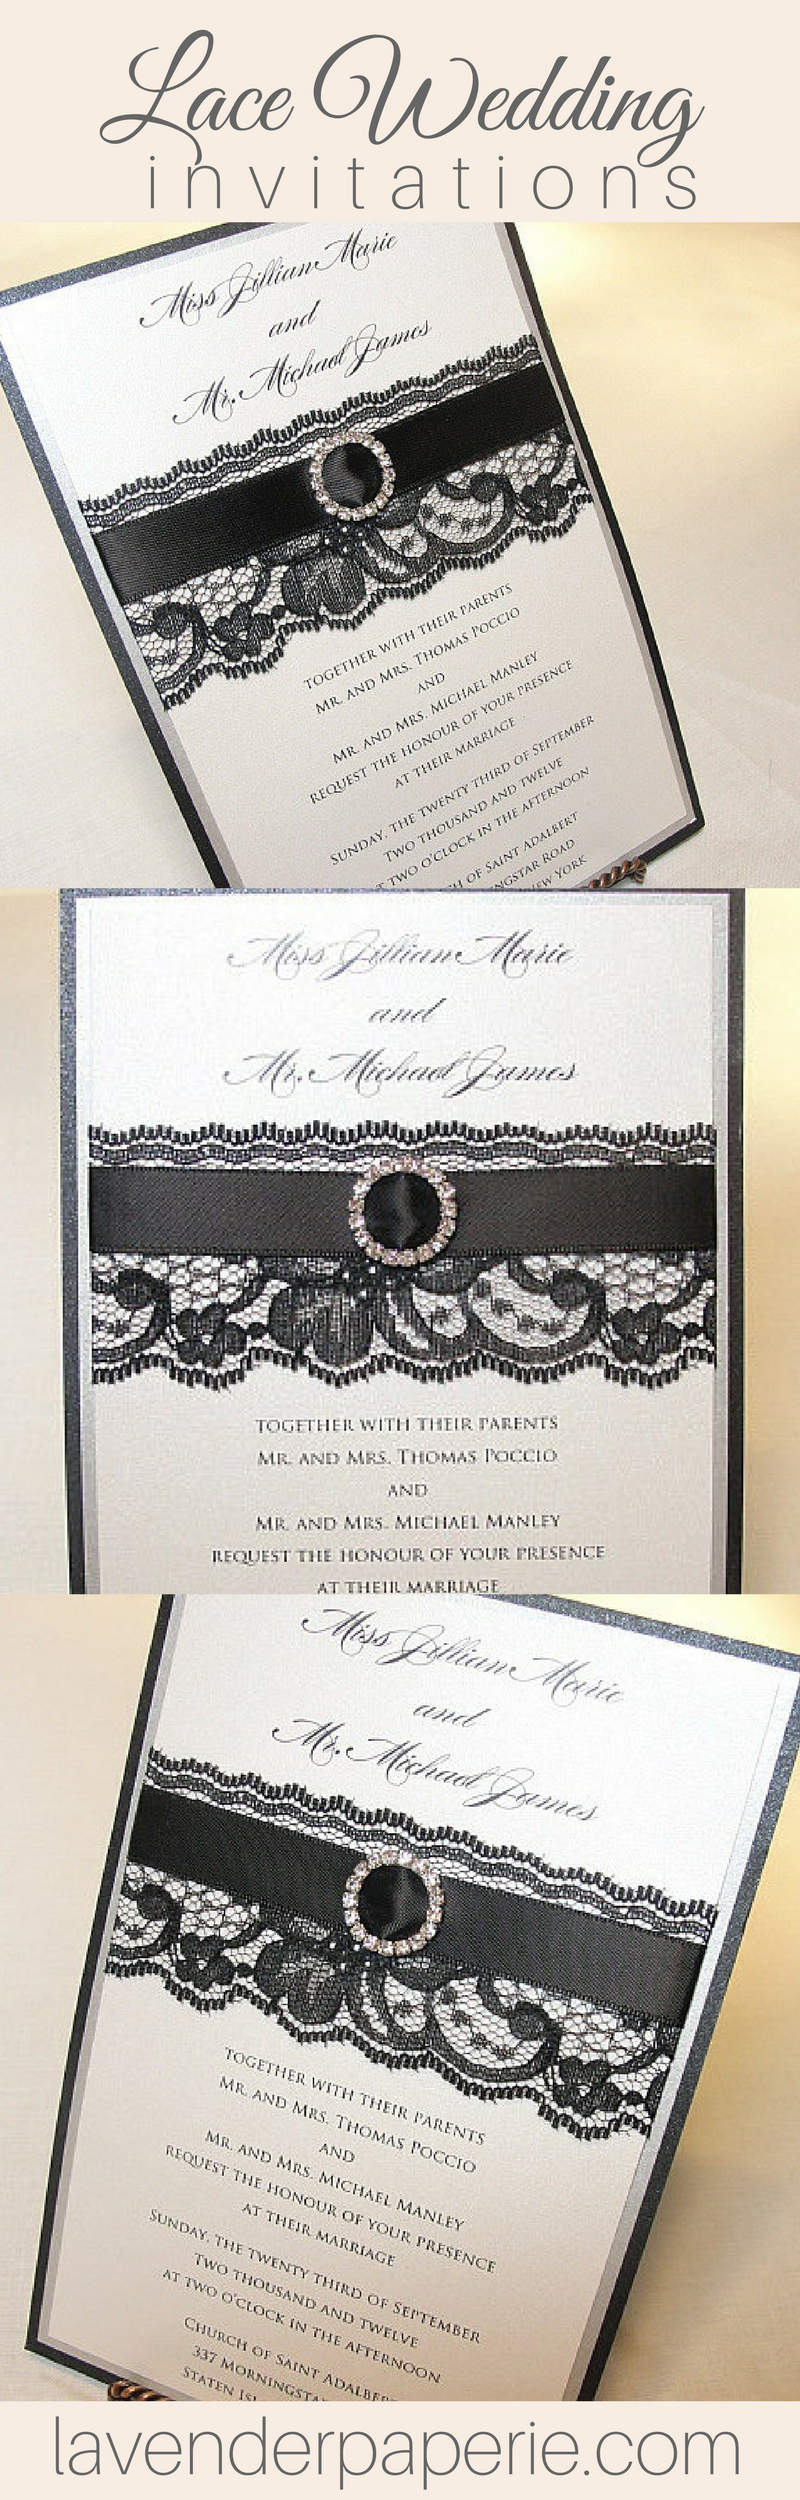 small wedding ceremony invitations%0A Explore these ideas and more